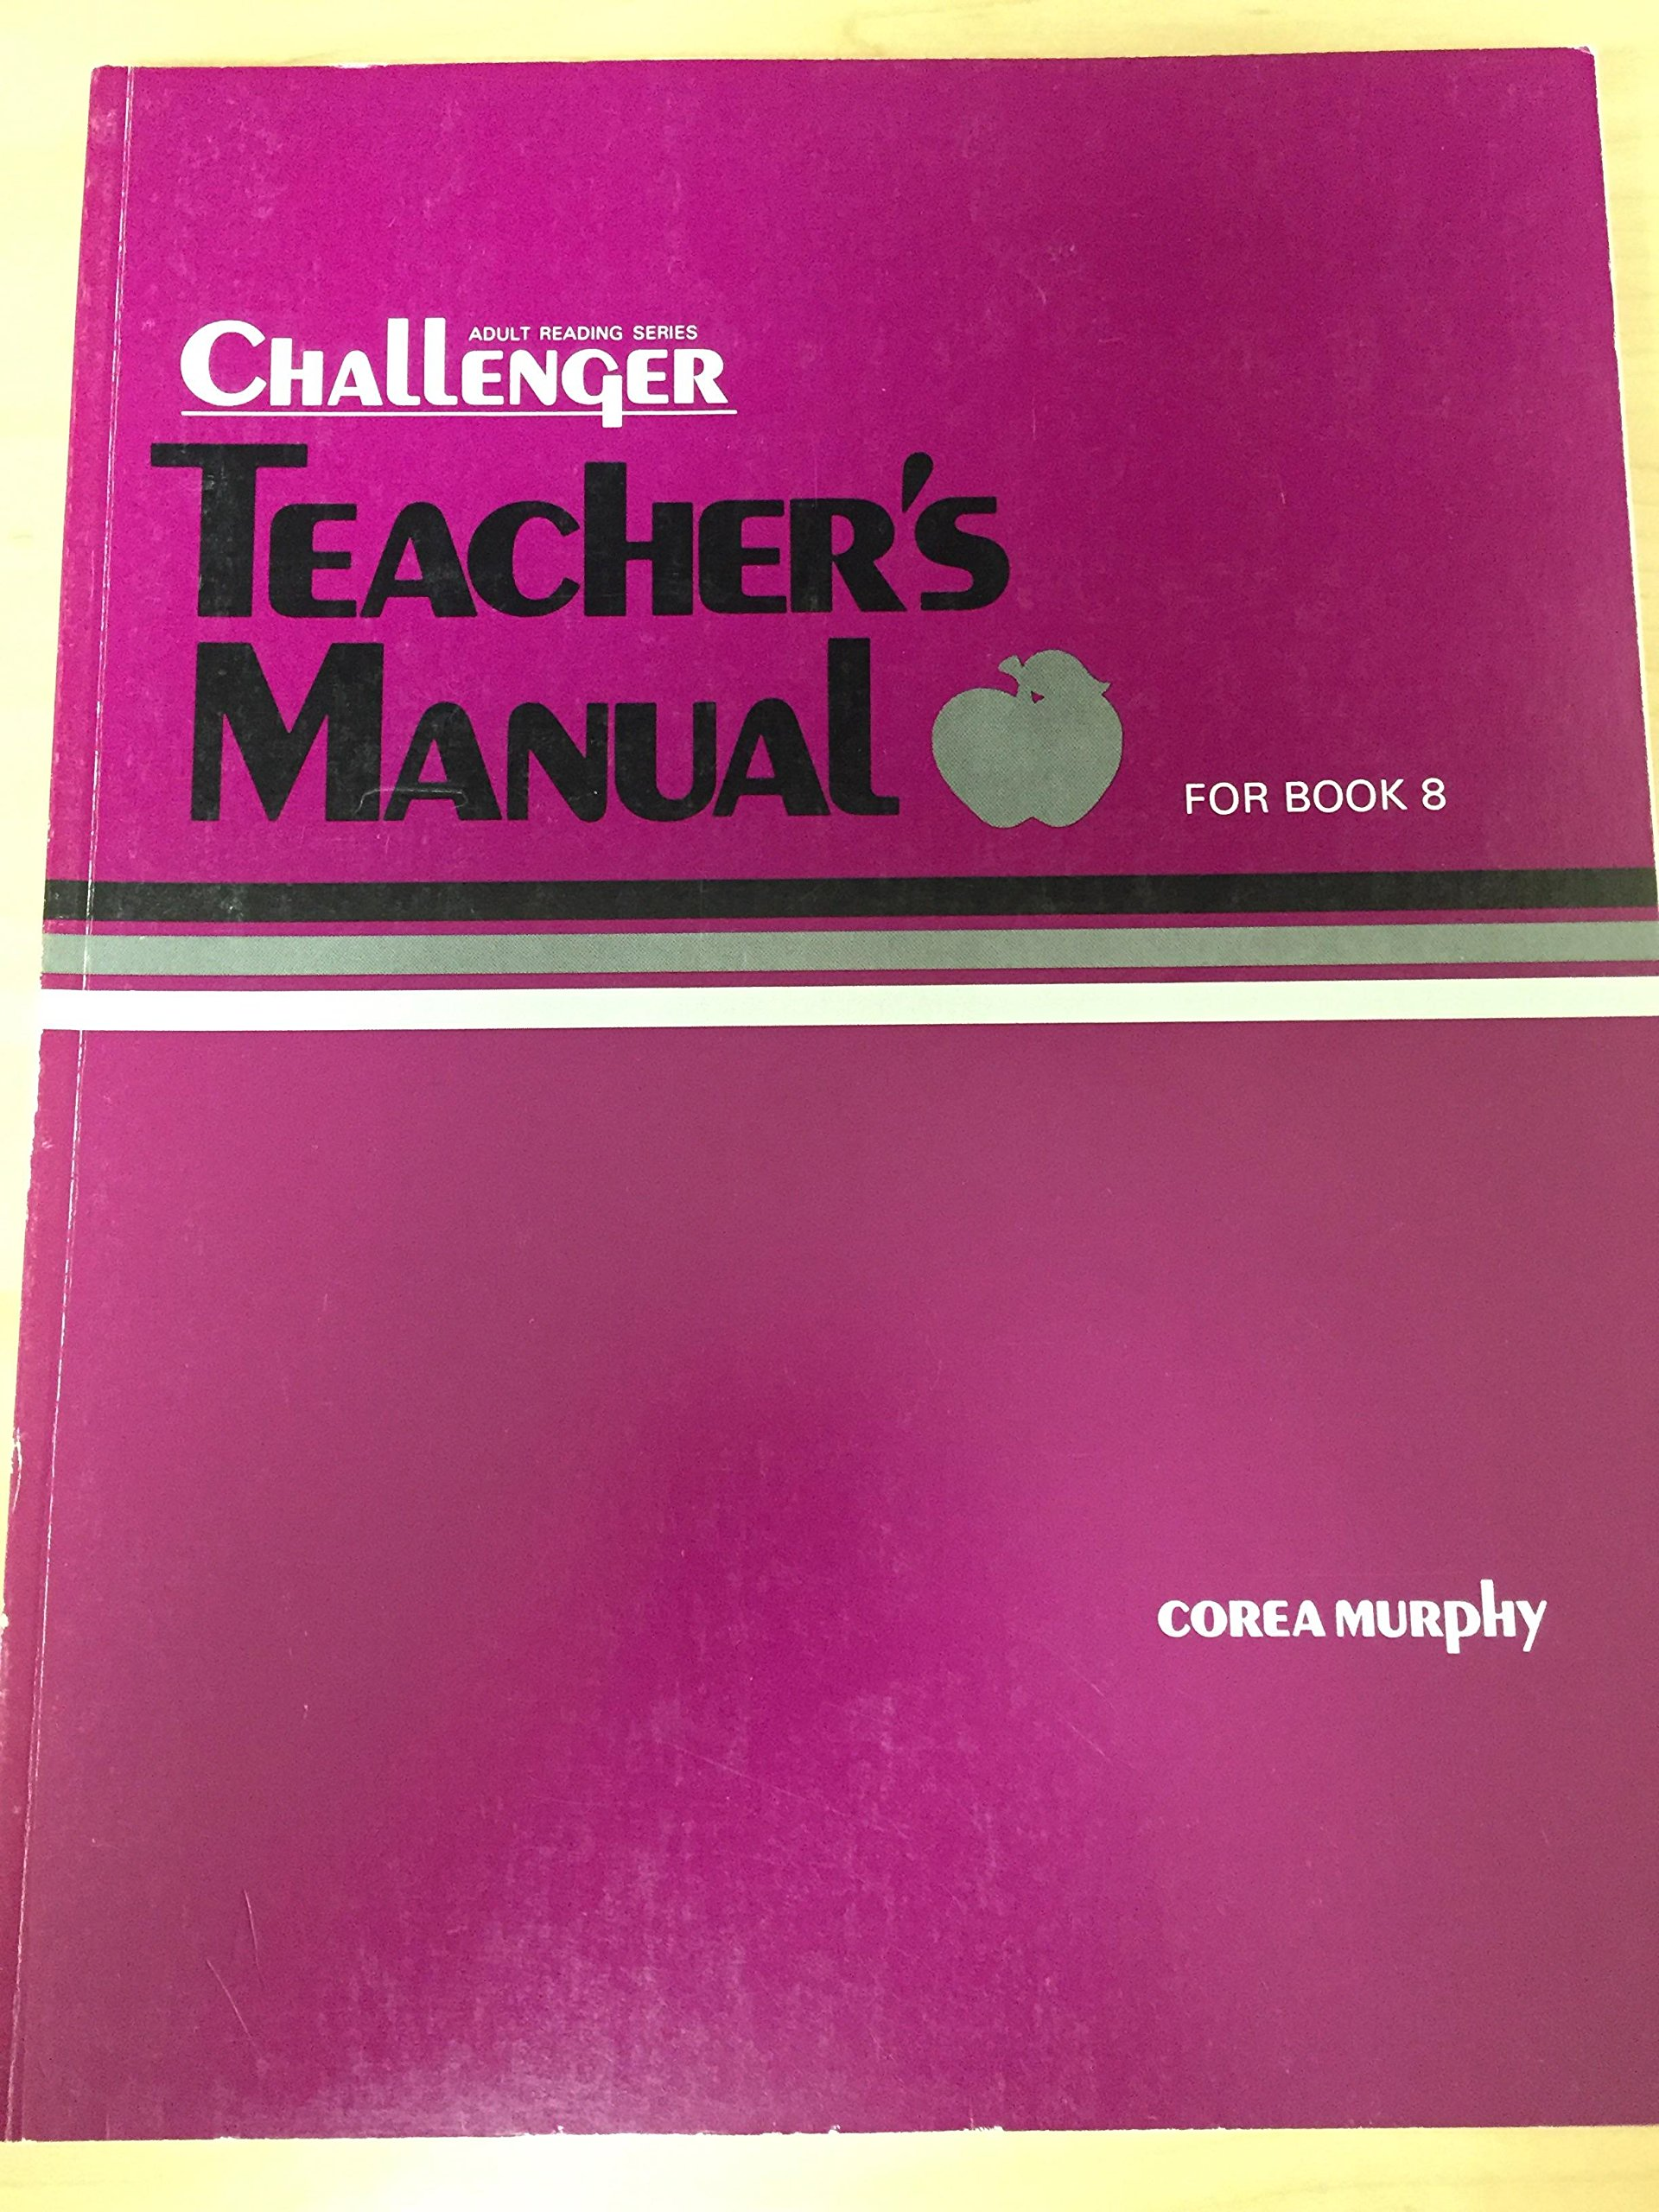 Amazon.com: Challenger Teachers Manual Book 8 (Challenger Reading Series)  (9780883367957): Not Available: Books